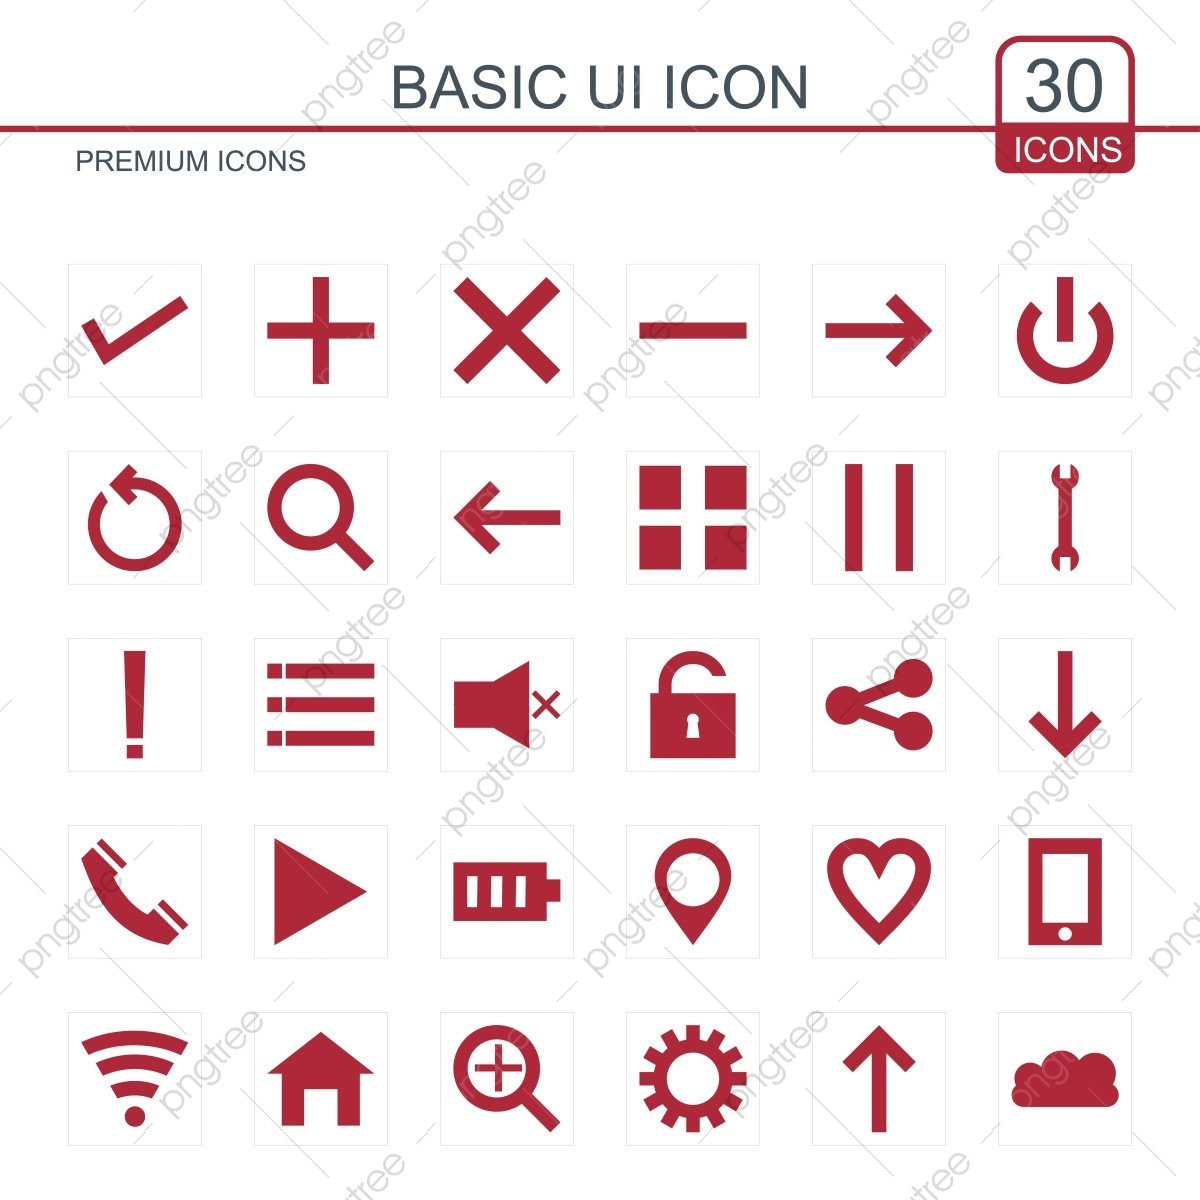 basic ui icons set red ui icons red icons basic icons png and vector with transparent background for free download https pngtree com freepng basic ui icons set red 3545931 html